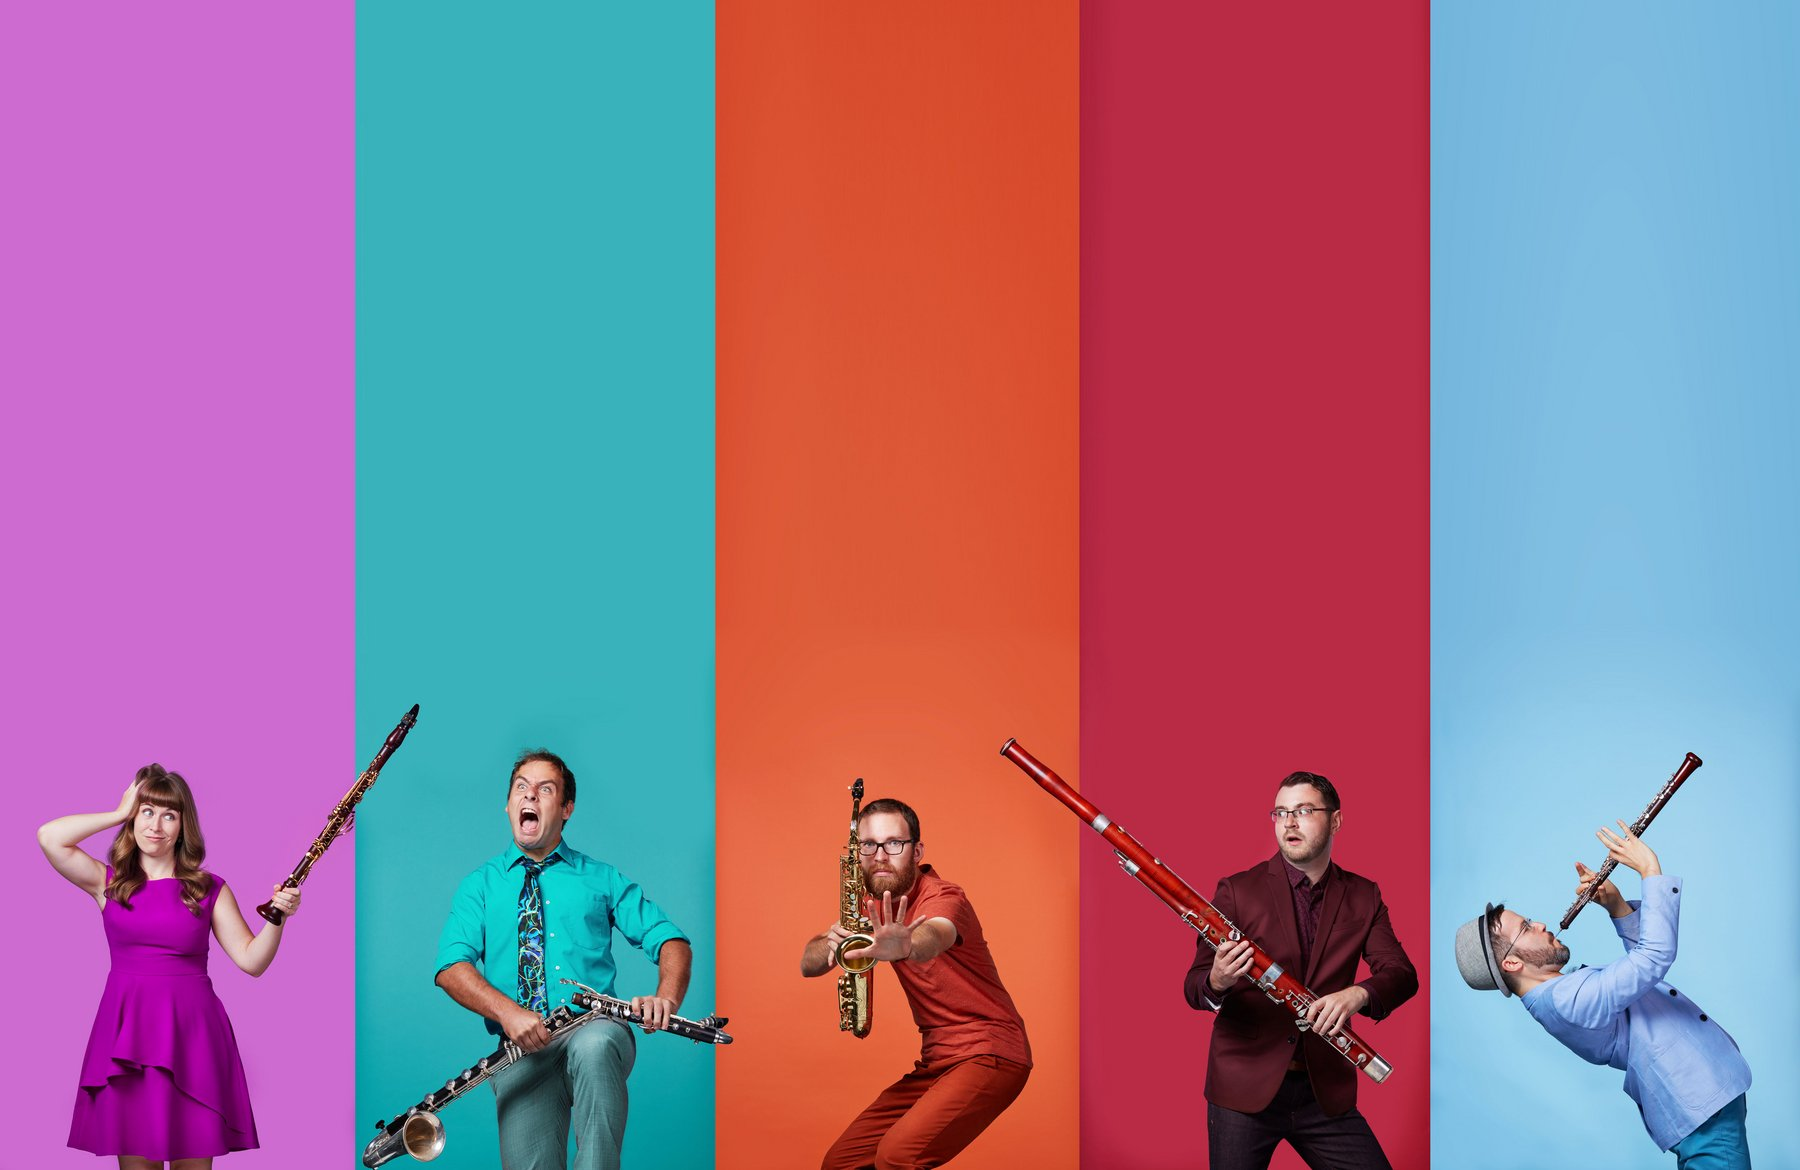 Five musicians each with a different color background